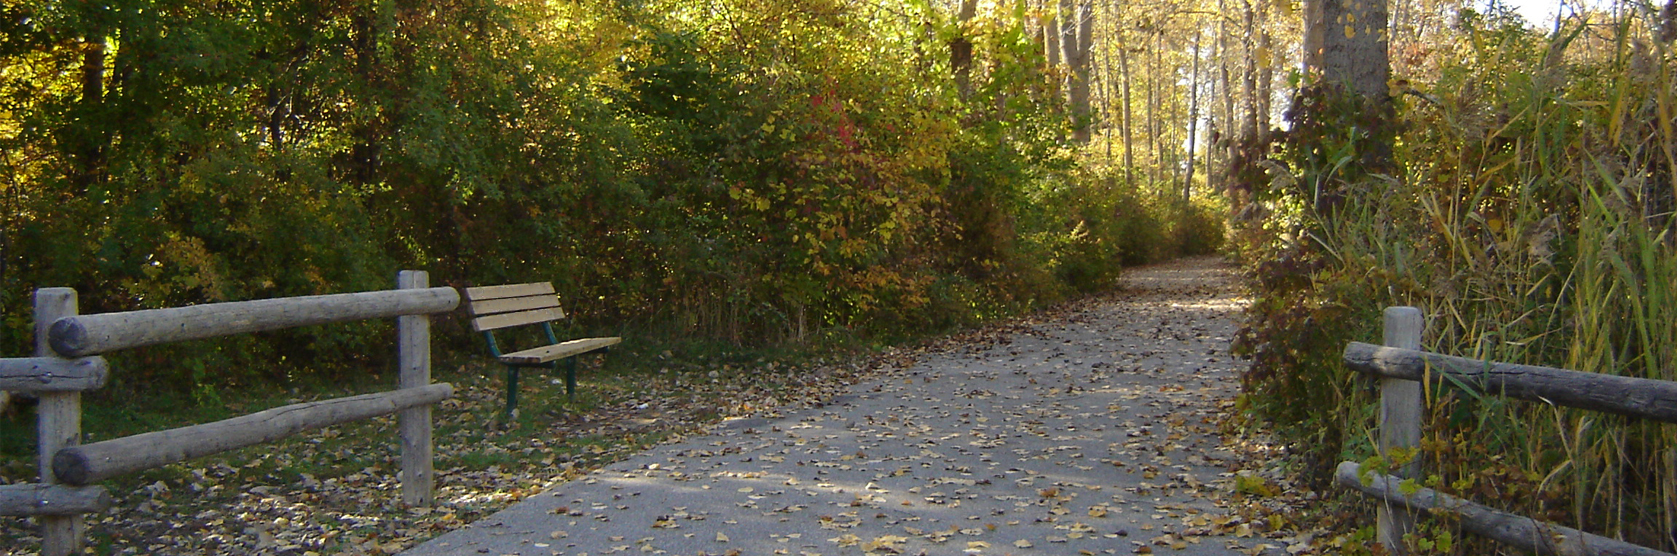 LaSalle Recreational Trails